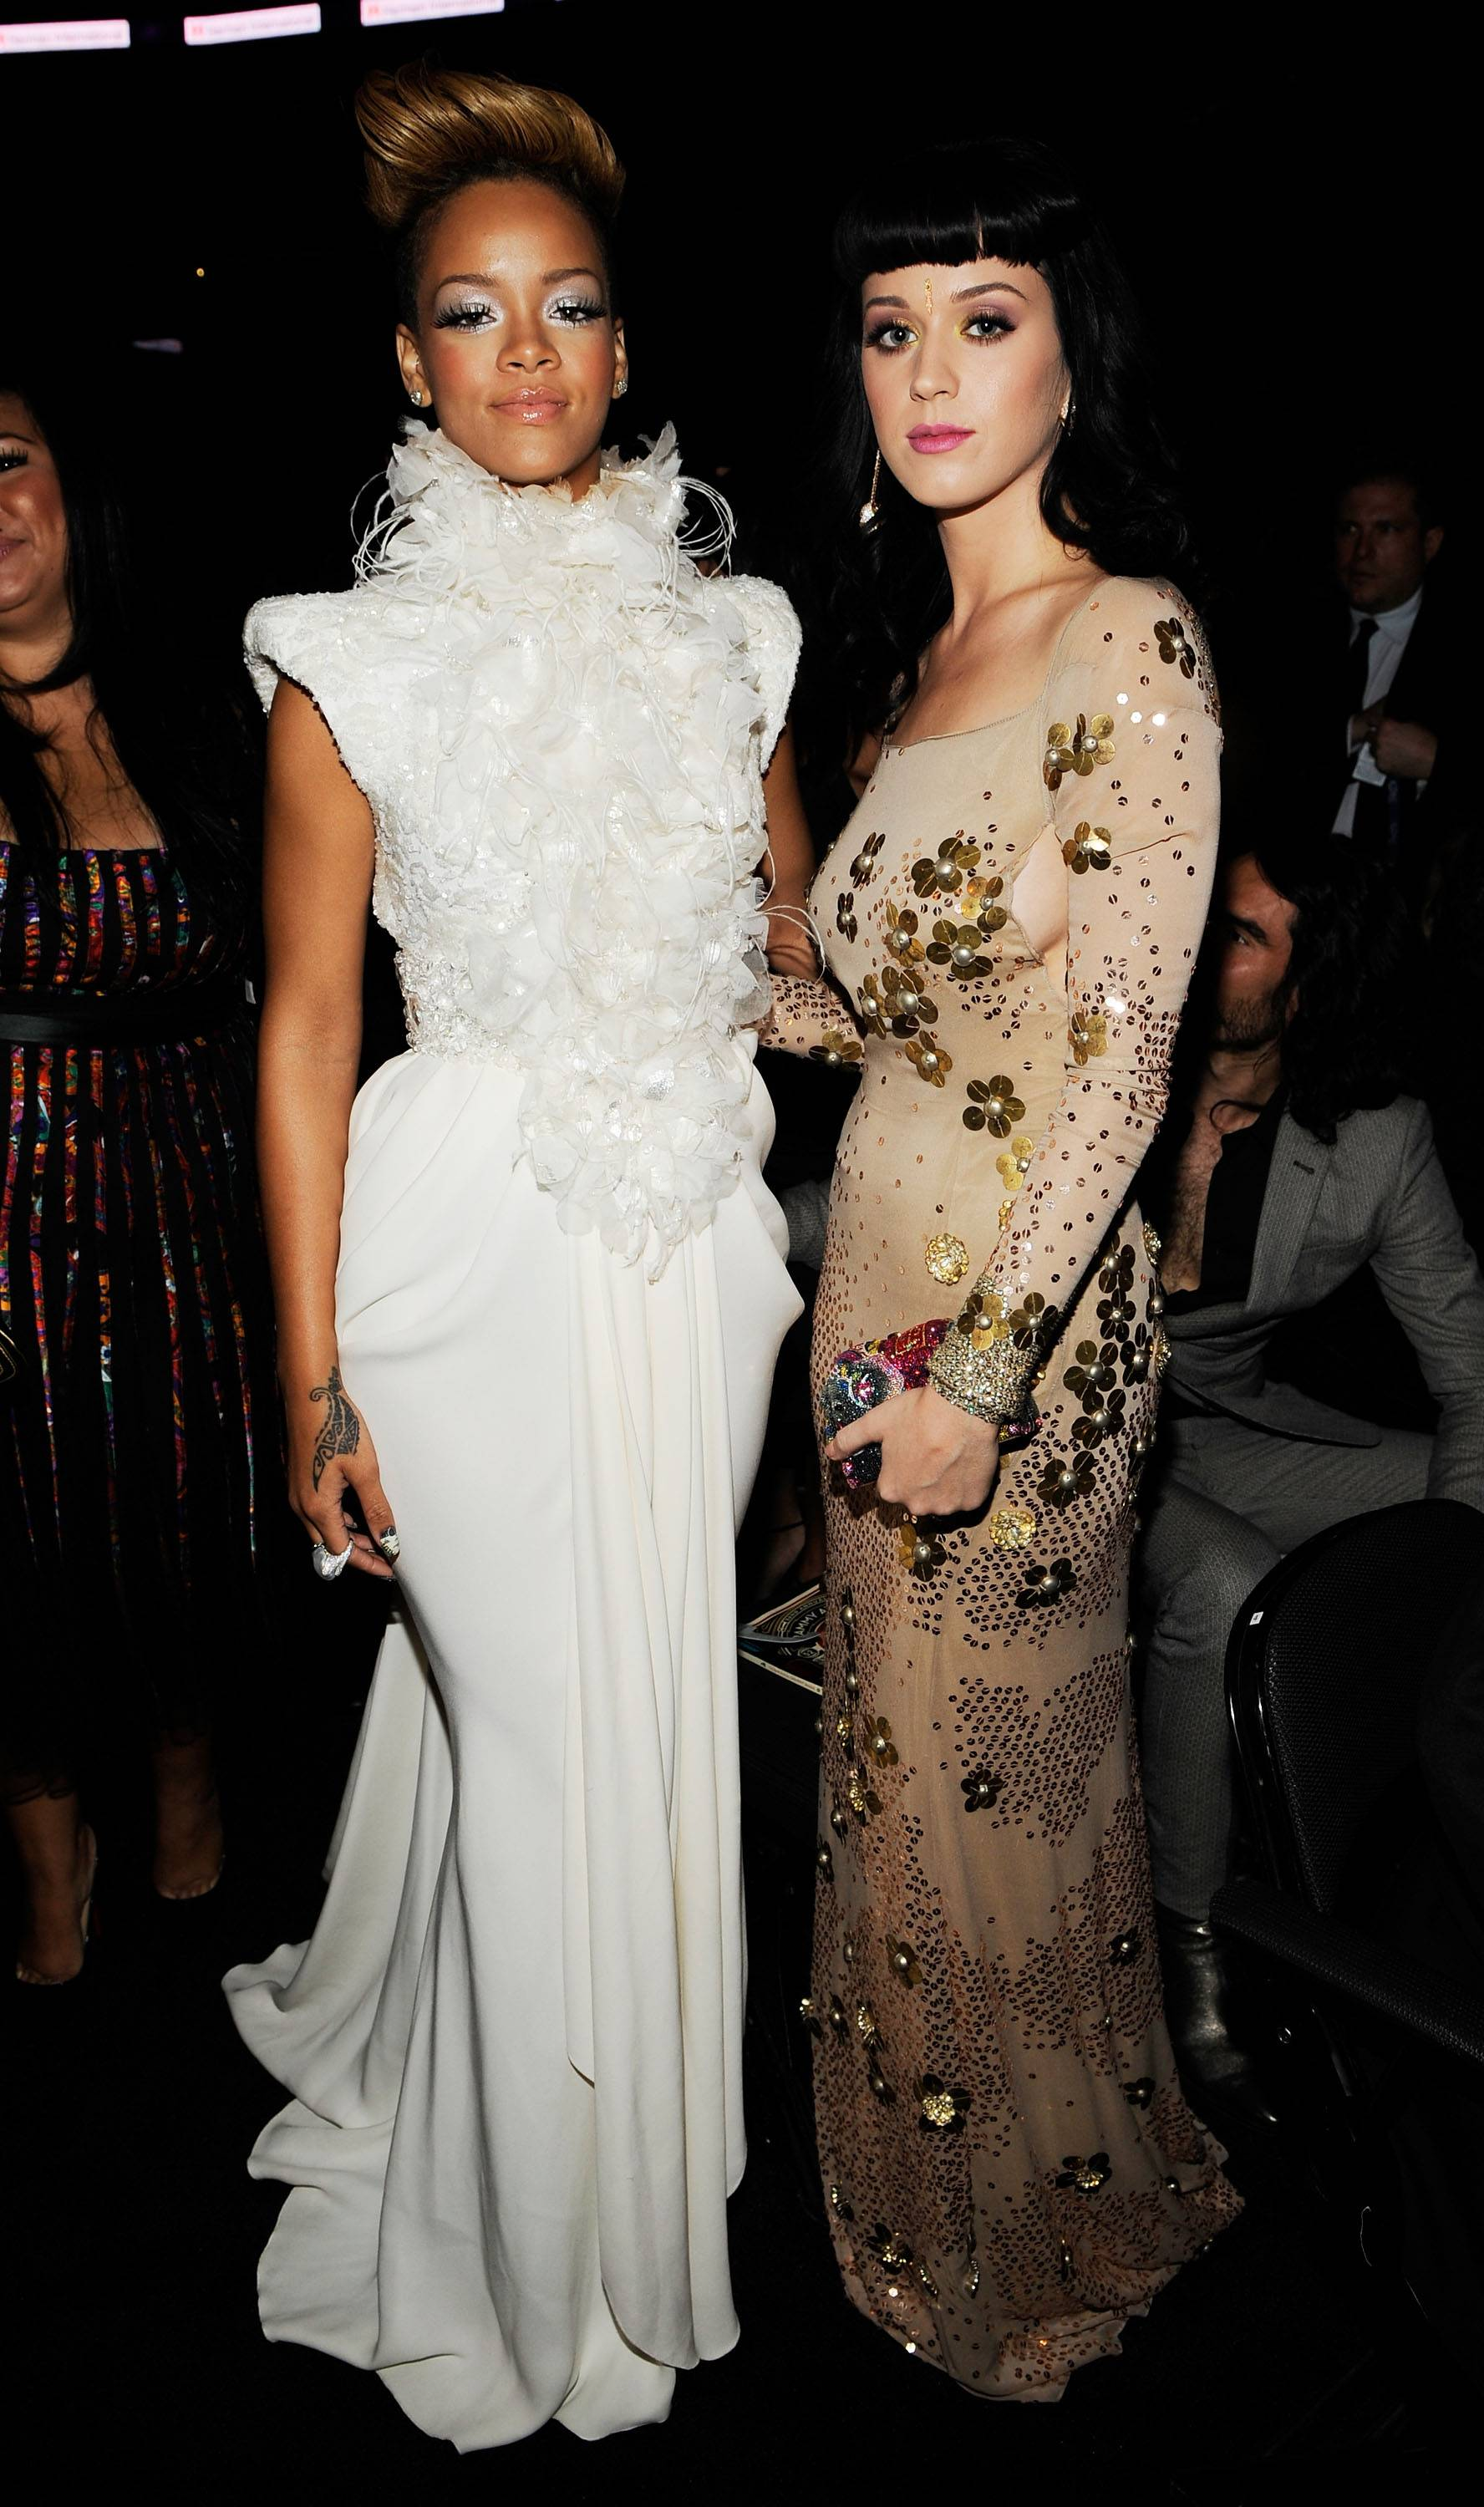 Rihanna & Katy Perry - Can you imagine the conversation between two of the biggest pop stars in the world? Rihanna and Katy Perry are attached at the hip when the pair isn?t touring or in the studio.(Photo: Larry Busacca/Getty Images for NARAS)